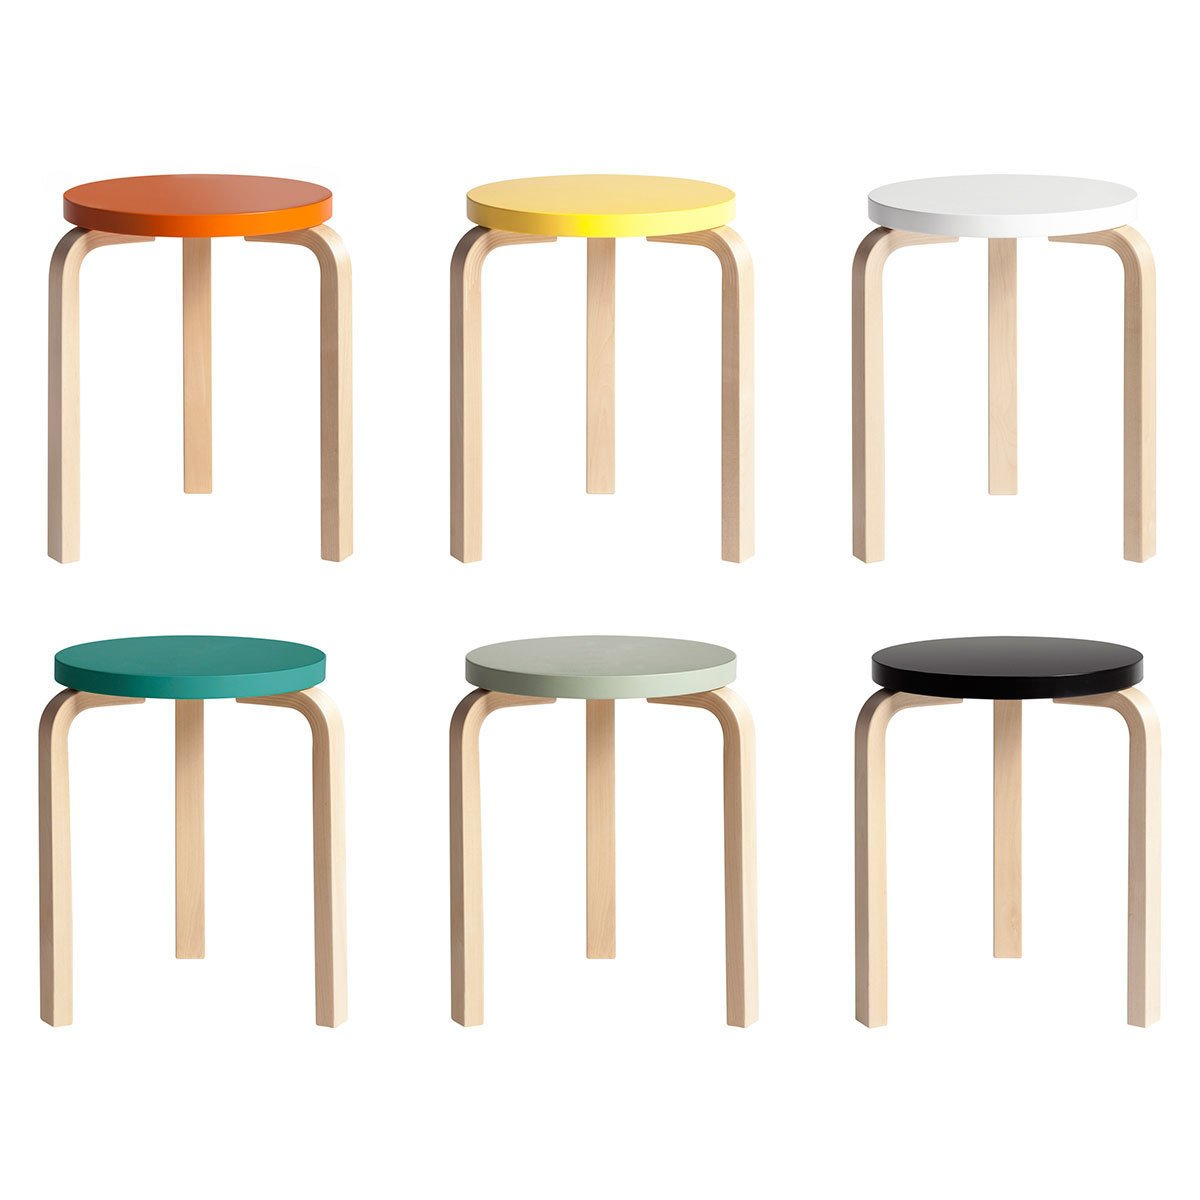 Alvar Aalto designed the Stool 60 for Artek in 1933; it has been in continuous production ever since.  Photo 1 of 5 in Design Classic: Alvar Aalto's Artek Stools from A Design Classic Reimagined: Artek Stool 60